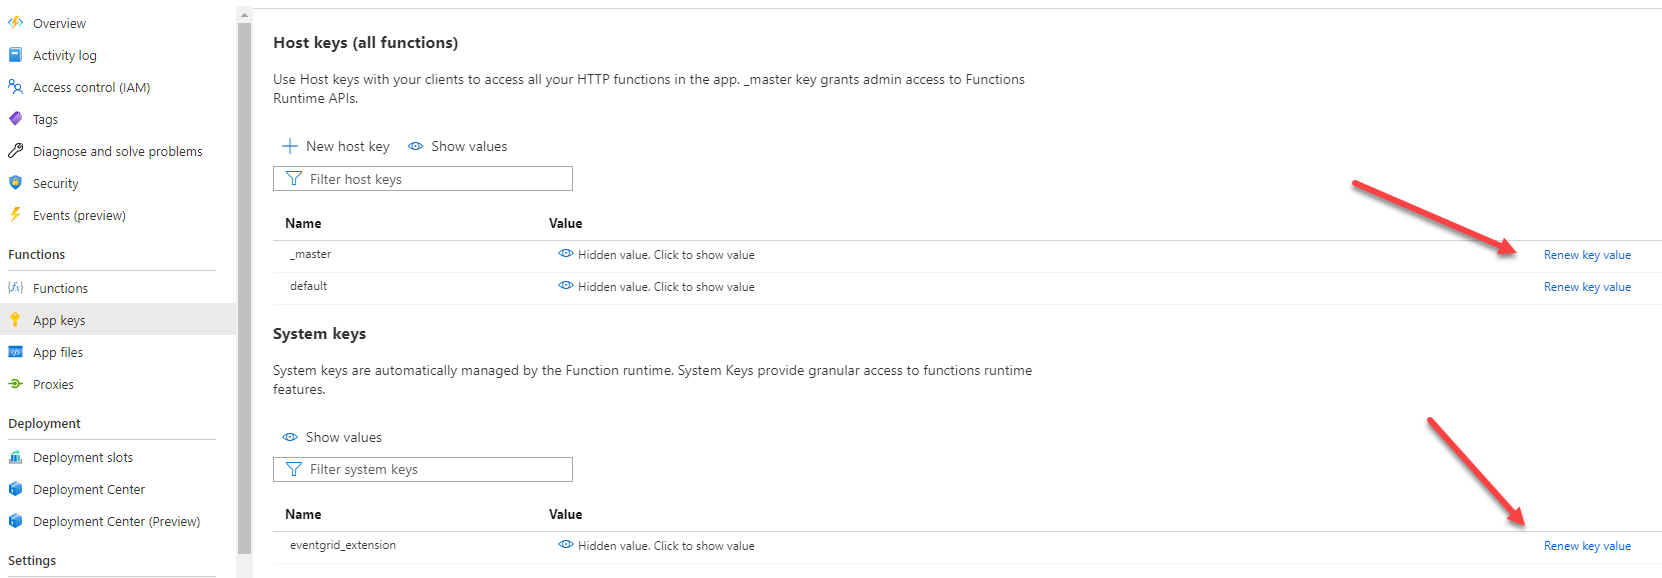 Azure portal to generate new function keys